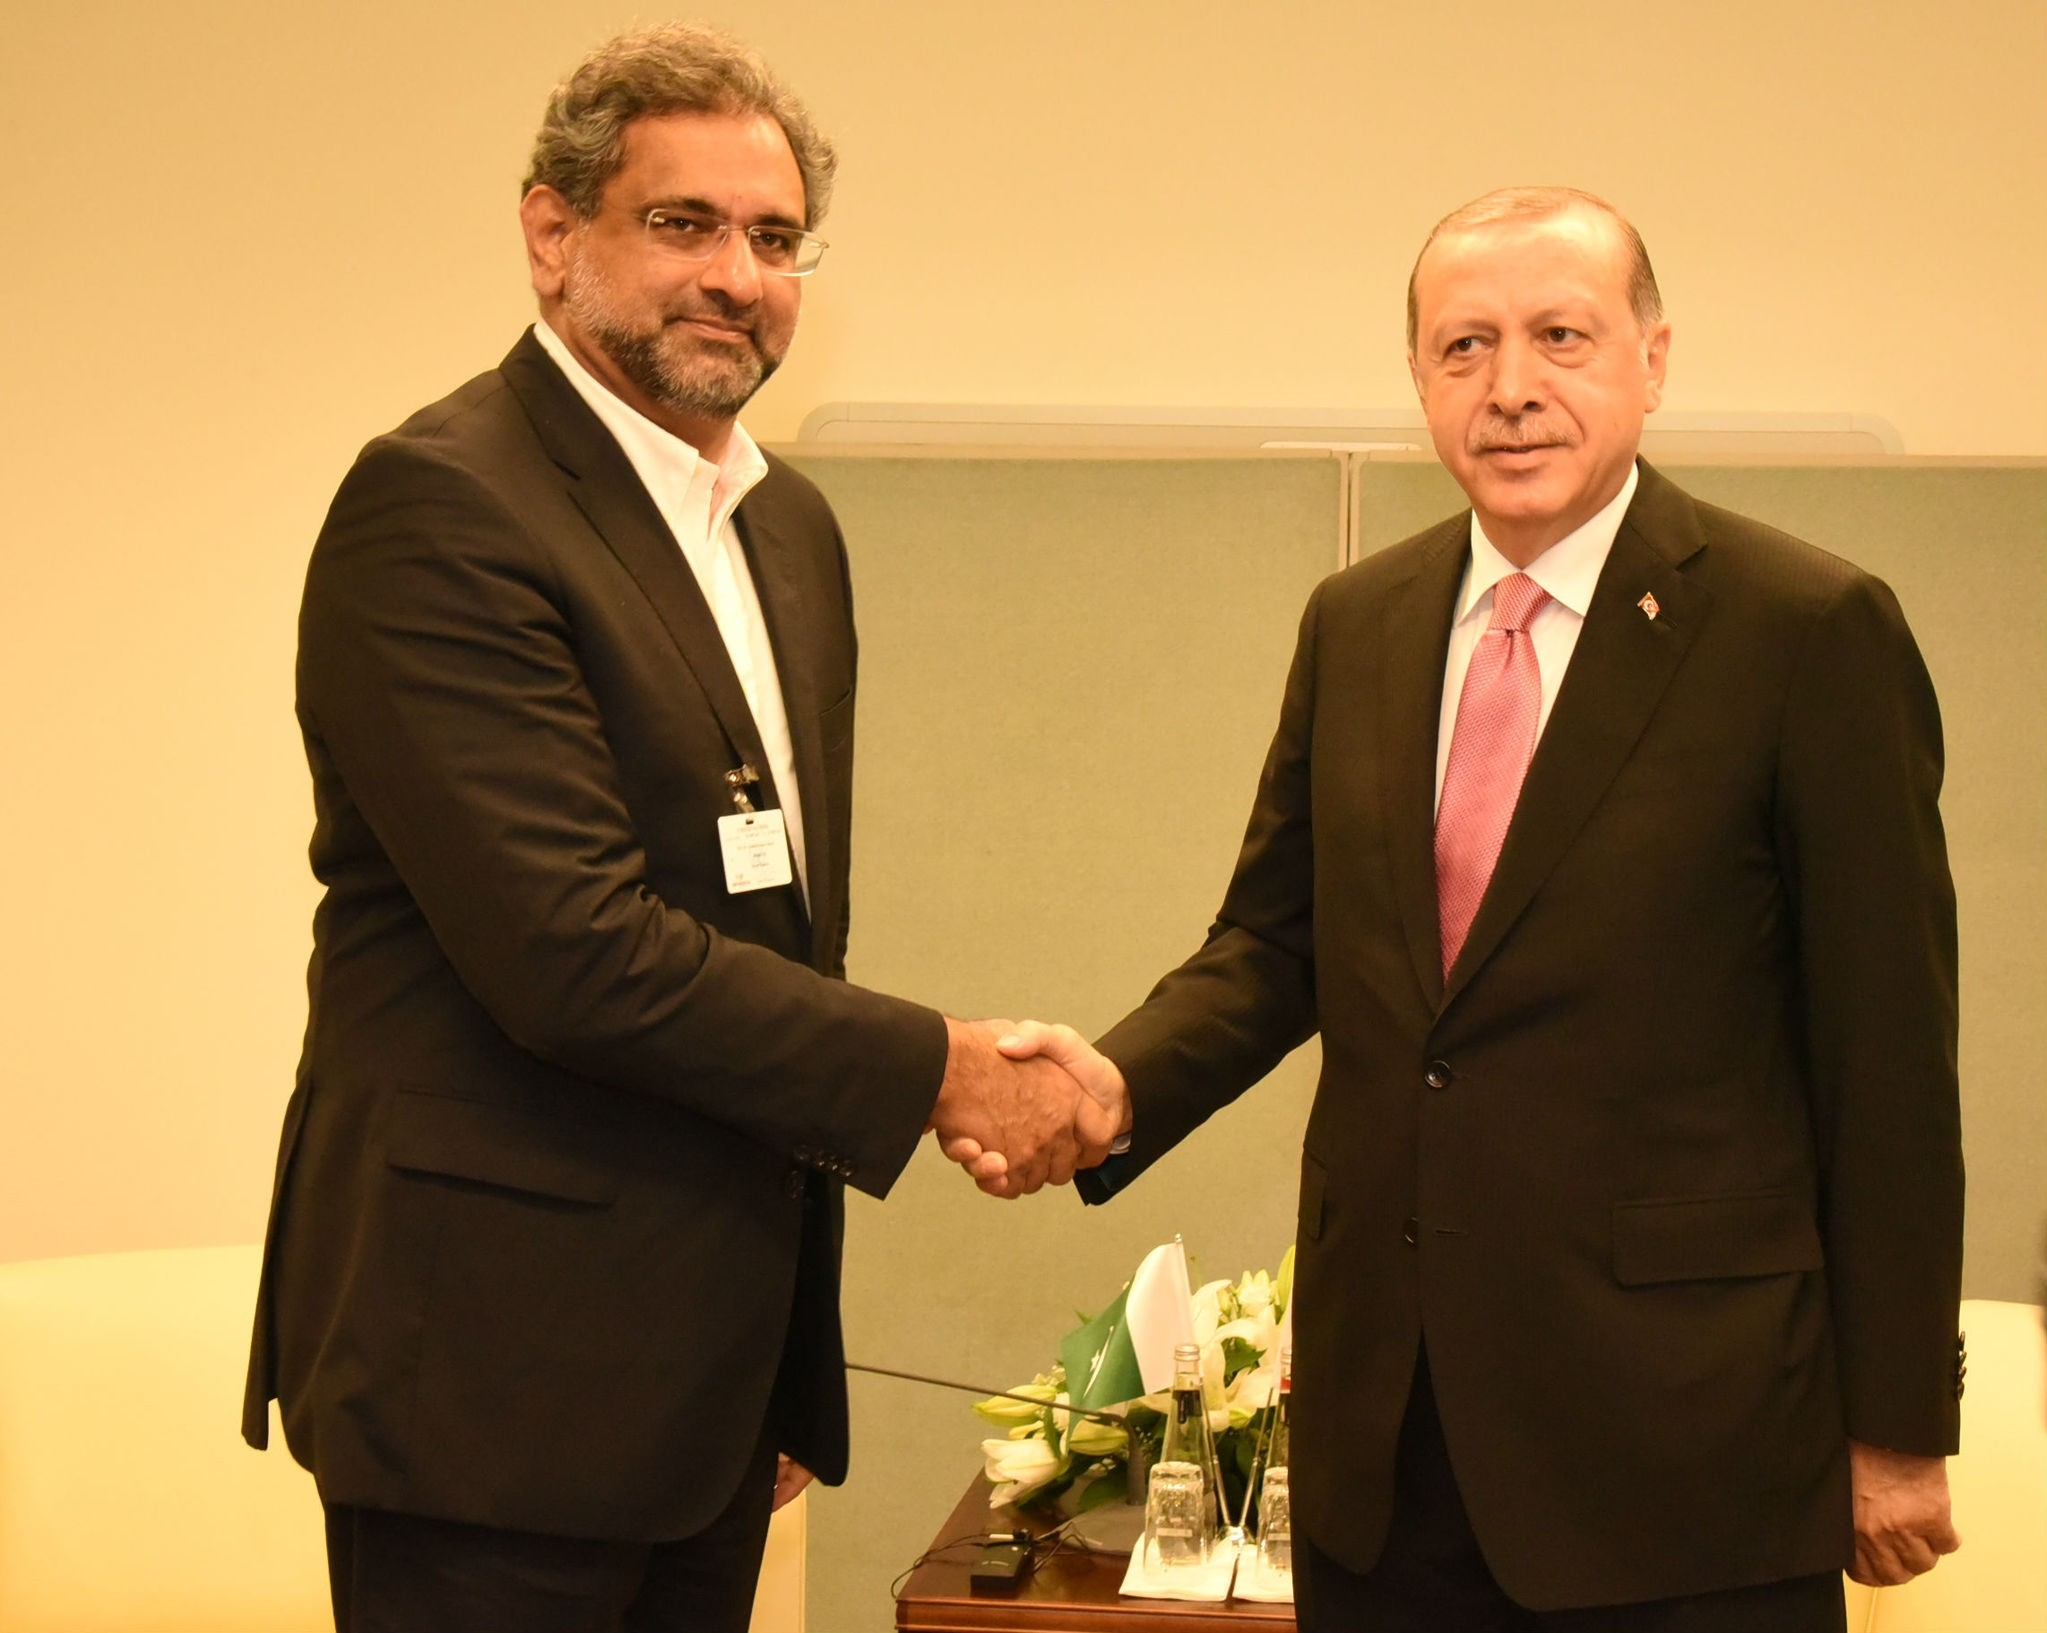 Visiting Turkey for the 9th summit of the Developing 8 (D-8), Prime Minister Abbasi said the relations between the two countries are based on mutual trust that is growing in all domains, including politics, economy, culture and defense.